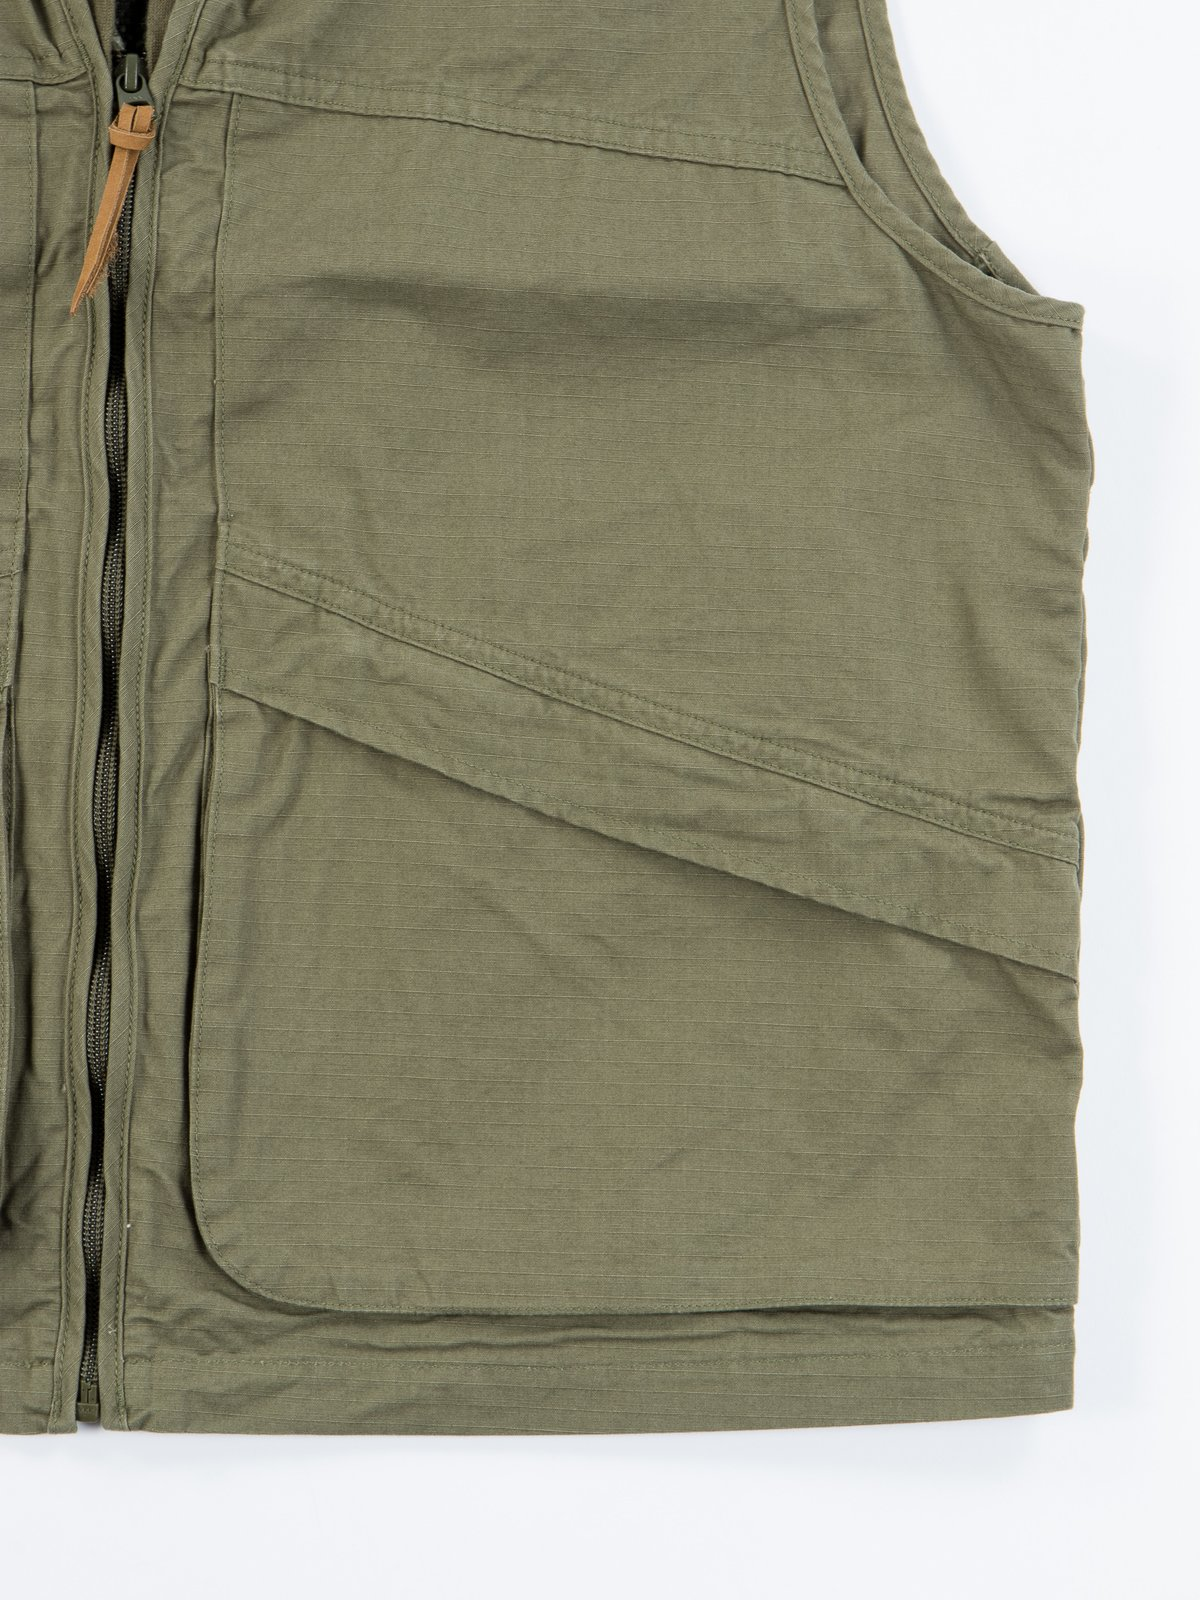 Green Ripstop Utility Vest - Image 5